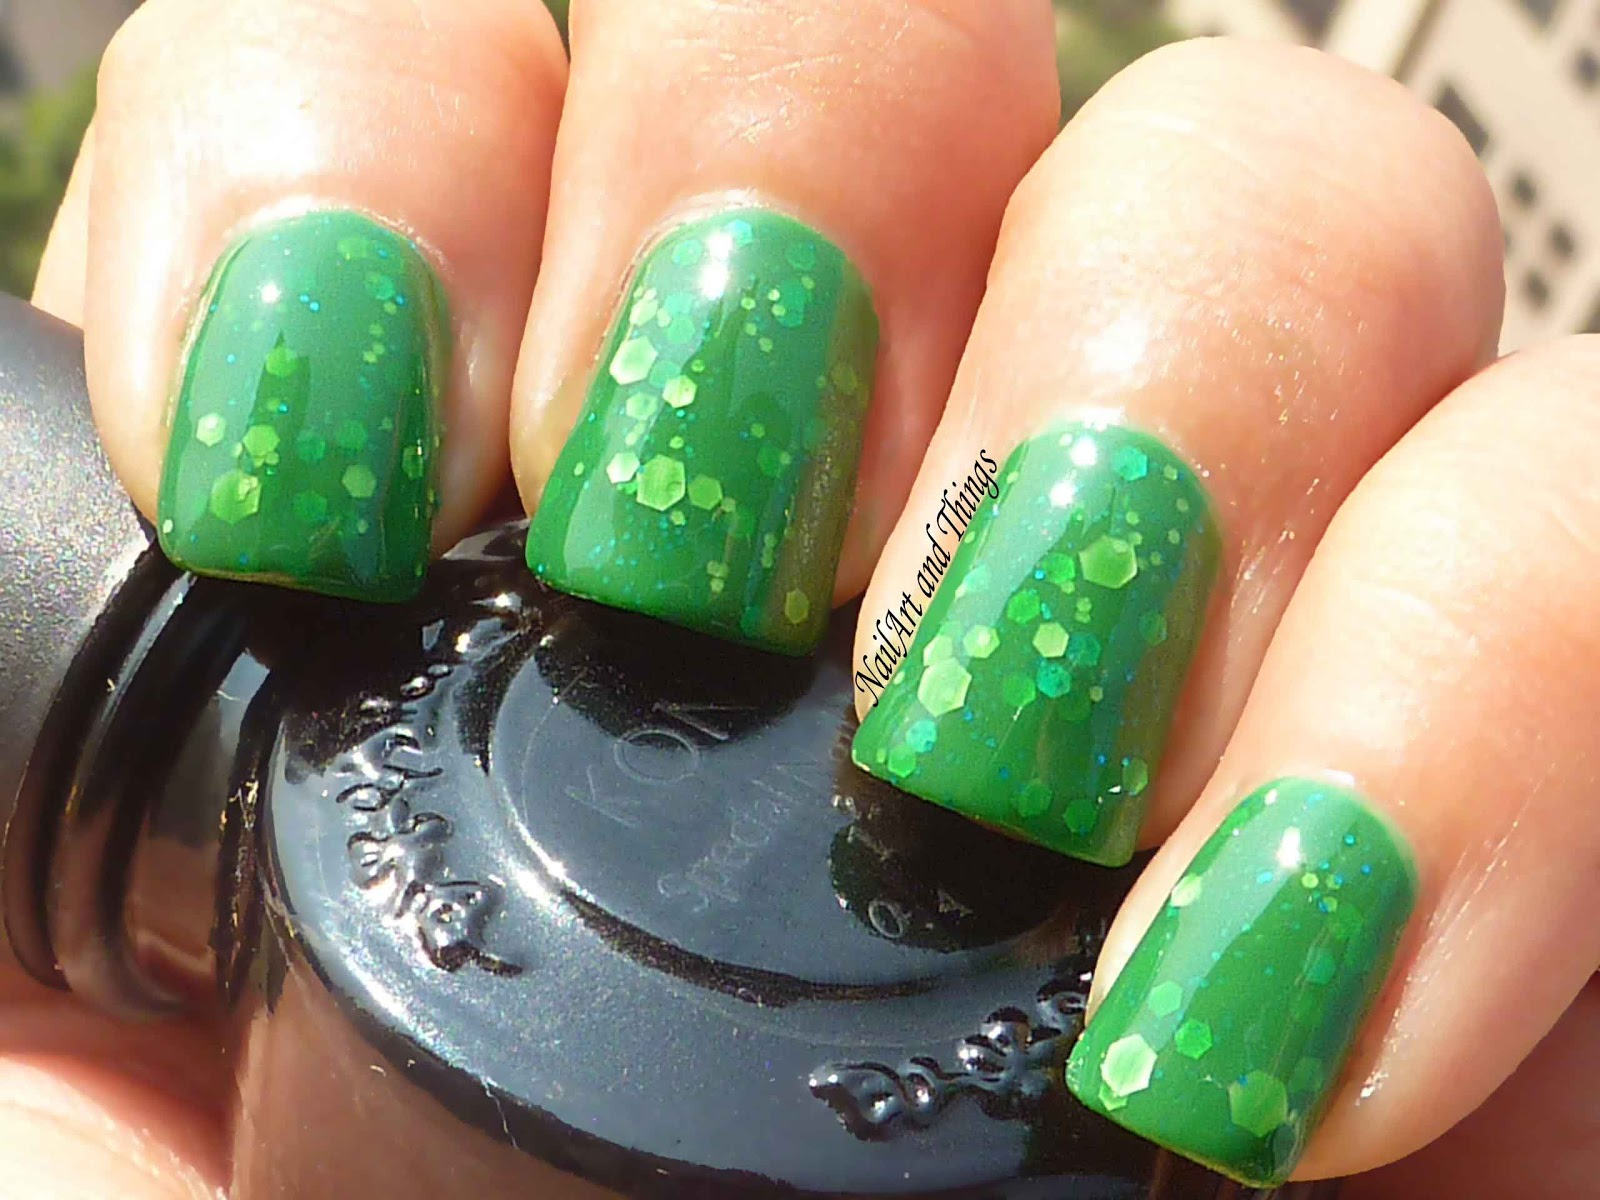 NailArt and Things: My First Franken Polish: Jelly Green Monster!!